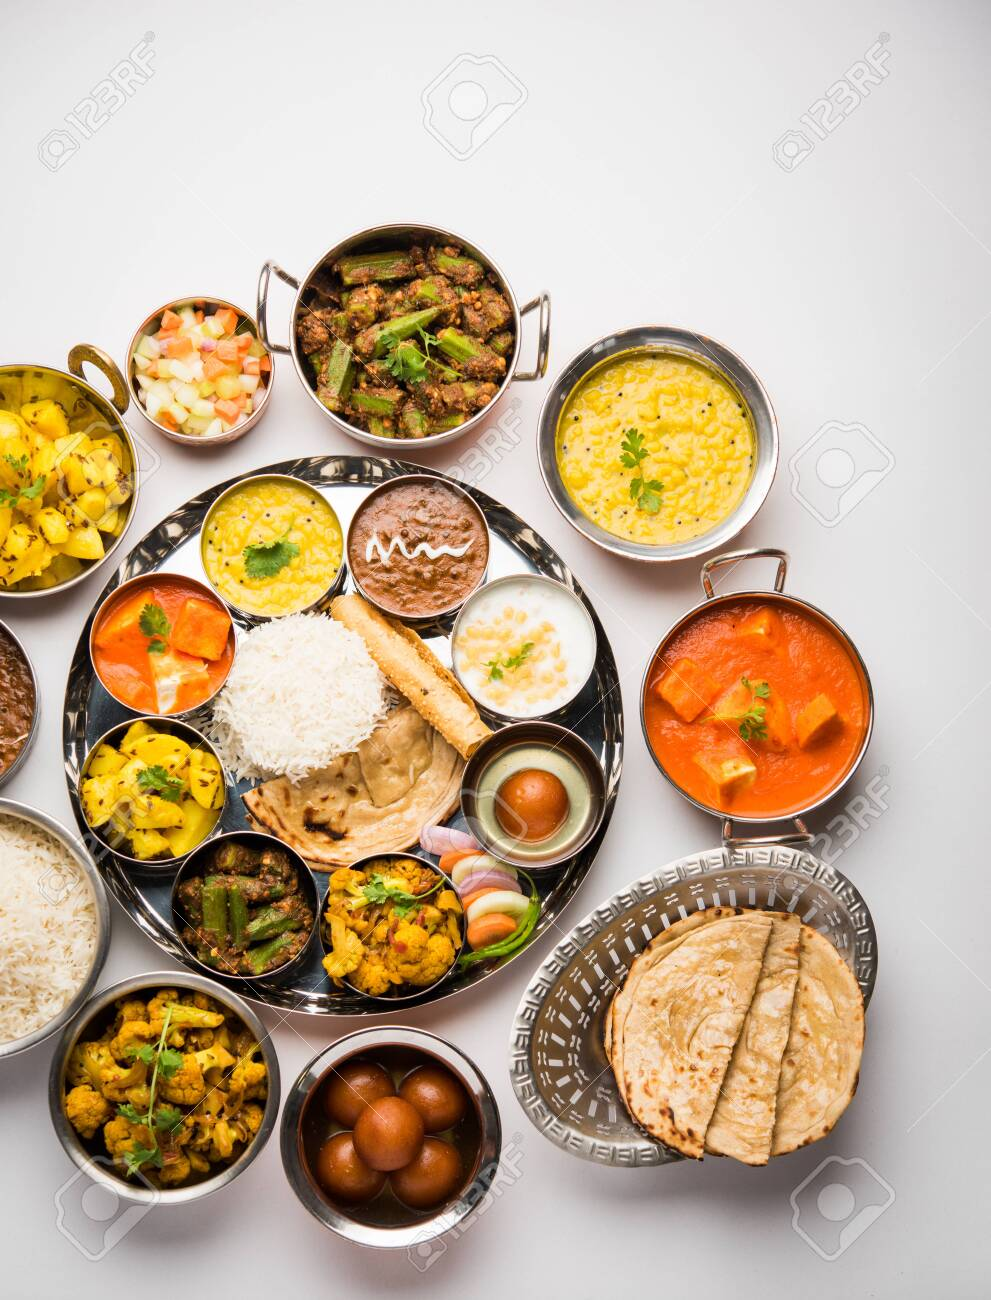 Indian Hindu Veg Thali Food Platter Selective Focus Stock Photo Picture And Royalty Free Image Image 125859383